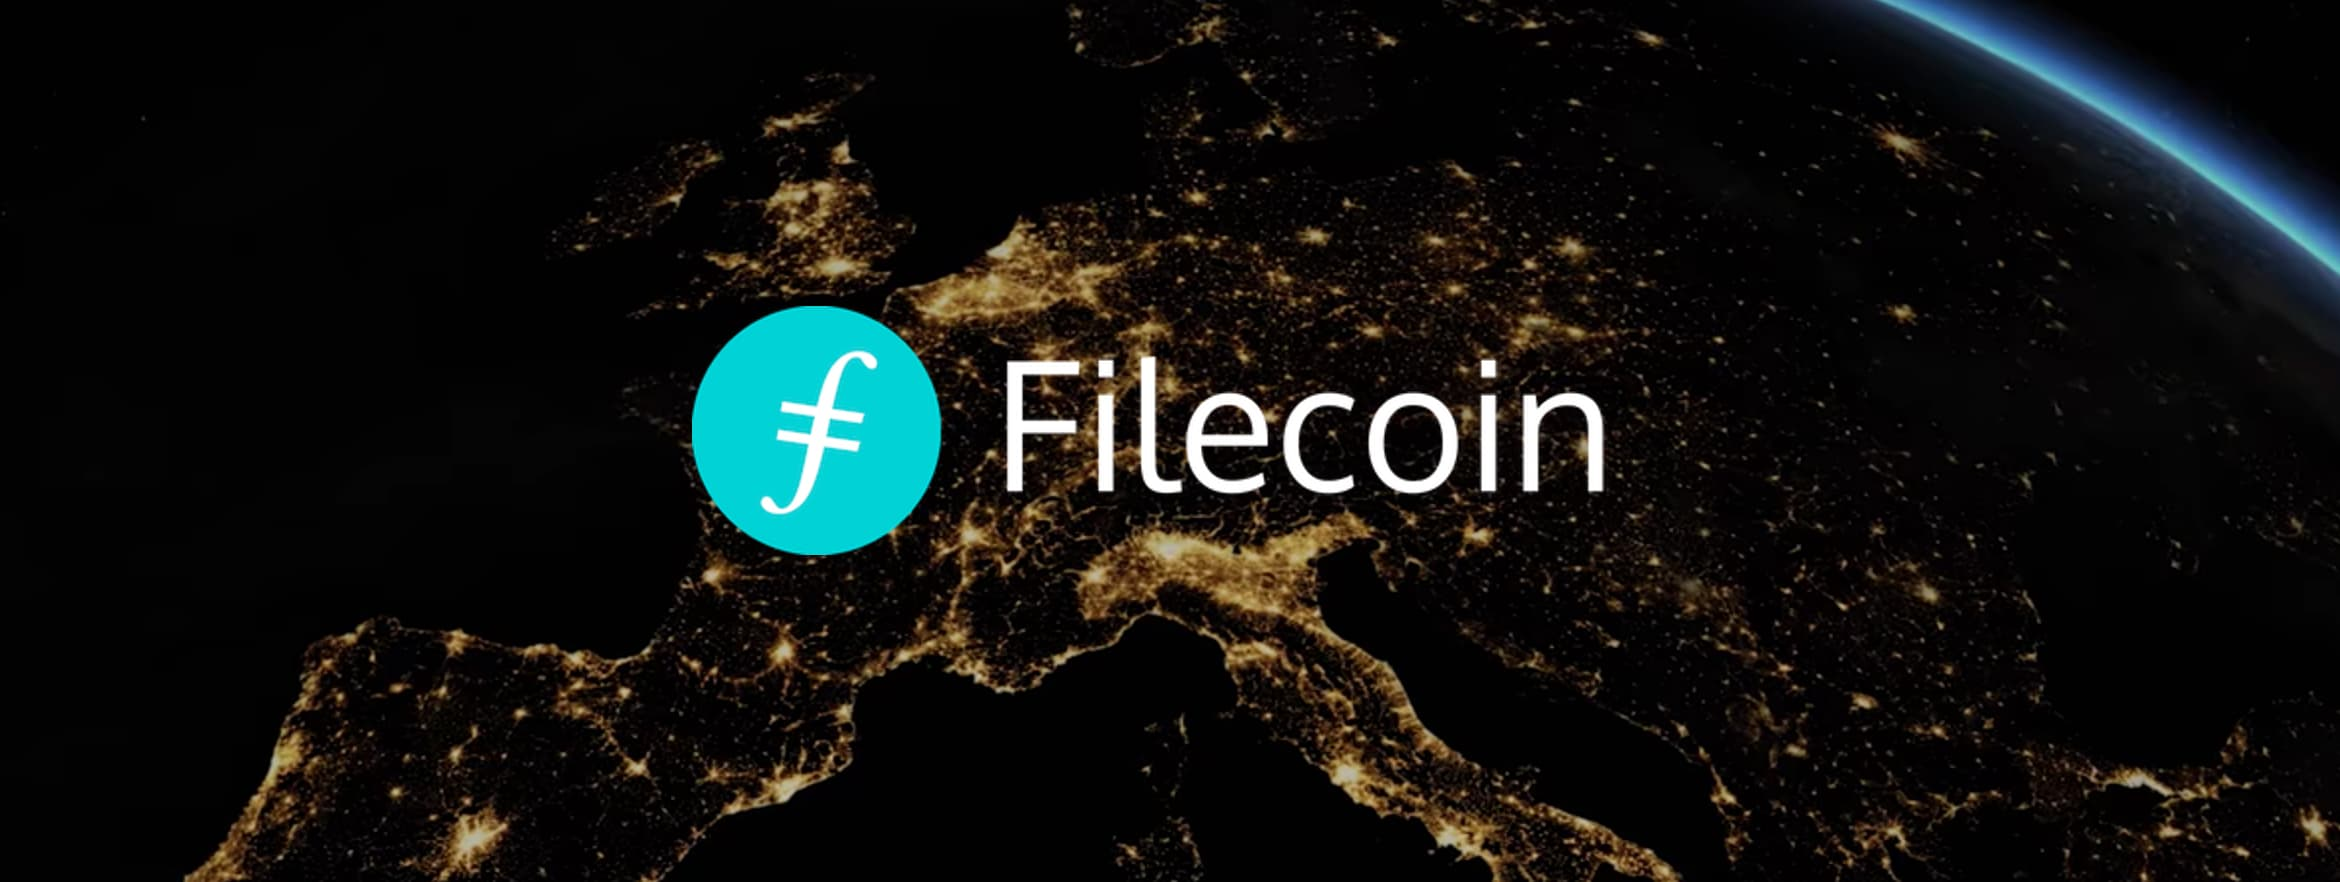 Announcing the Filecoin Token Sale and Upgraded Whitepaper